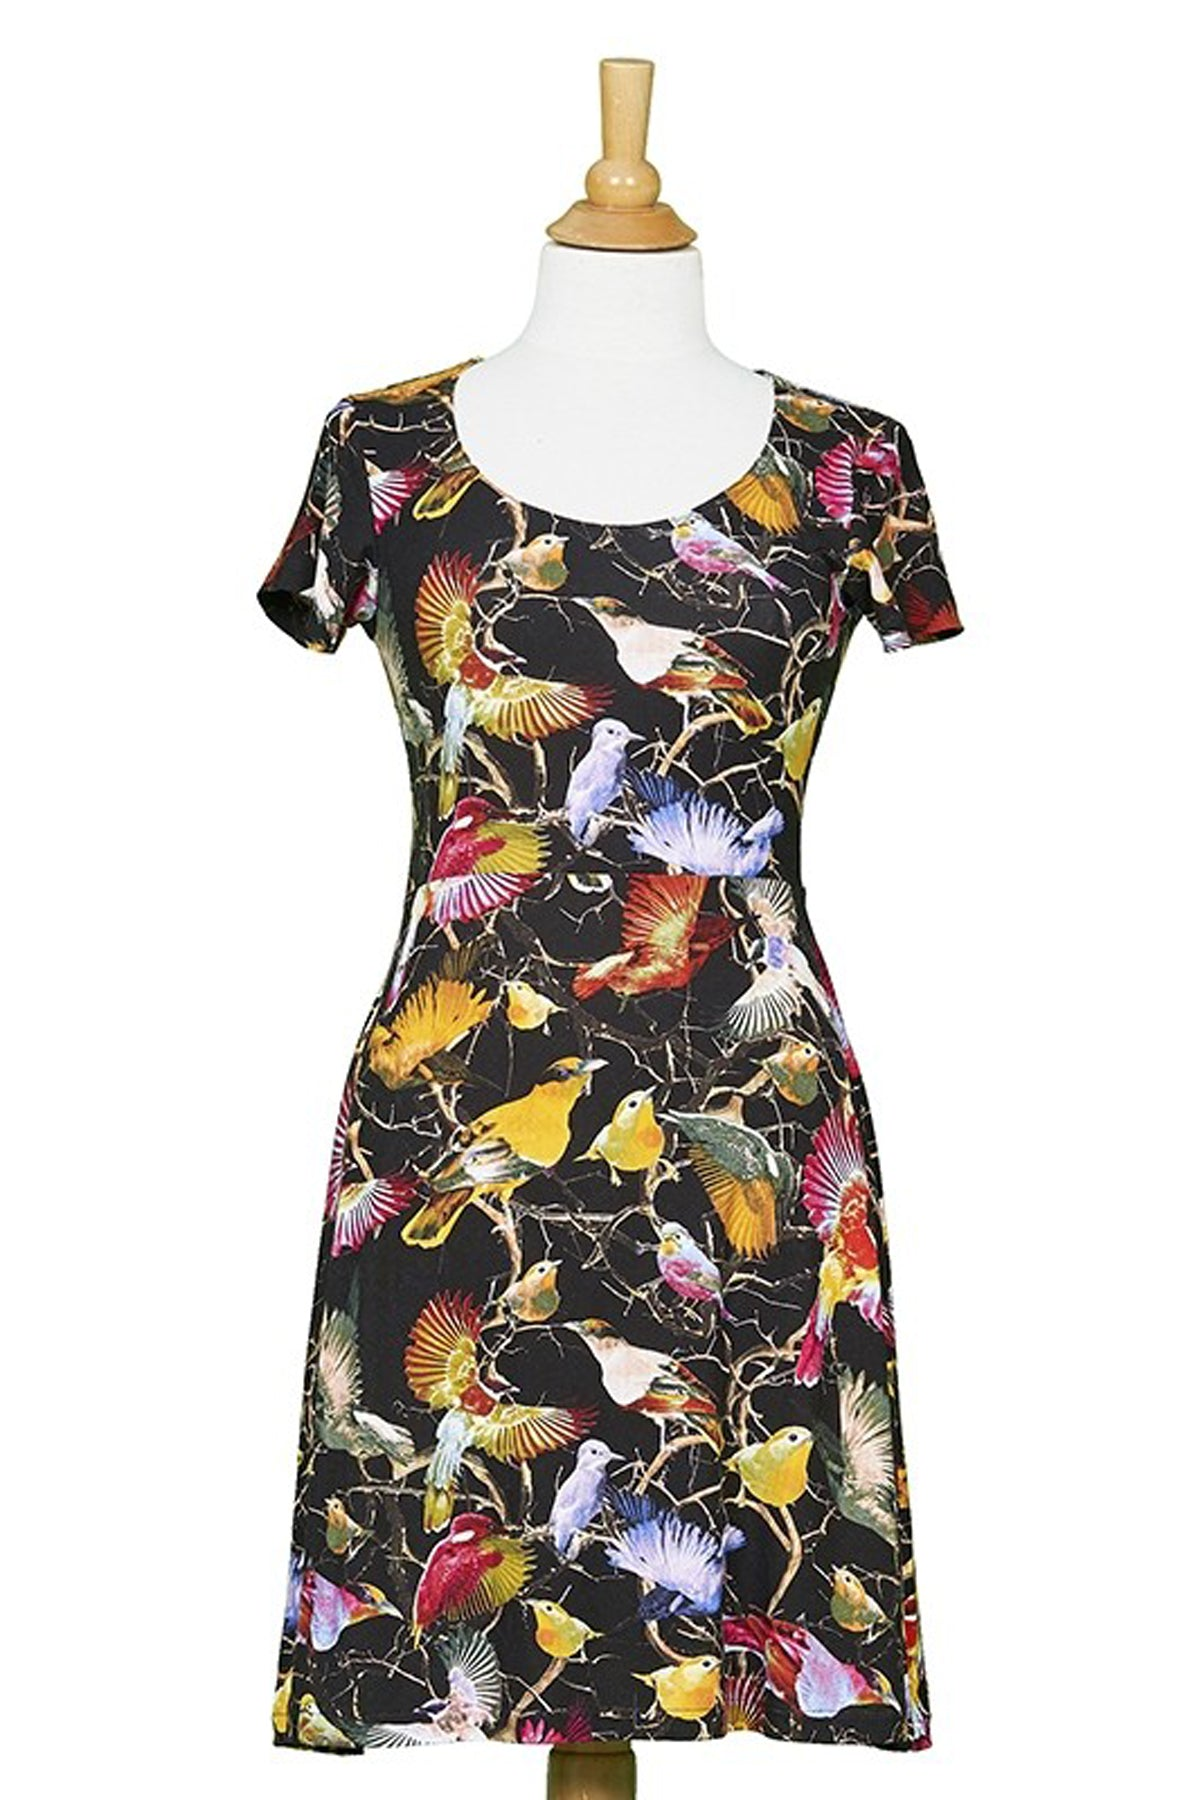 Manhattan Dress by Rien ne se Perd Tout se Cree, multicolour hummingbird print, short sleeves, scoop neck, A-line, lightweight knit, sizes XS-XXL, made in Quebec